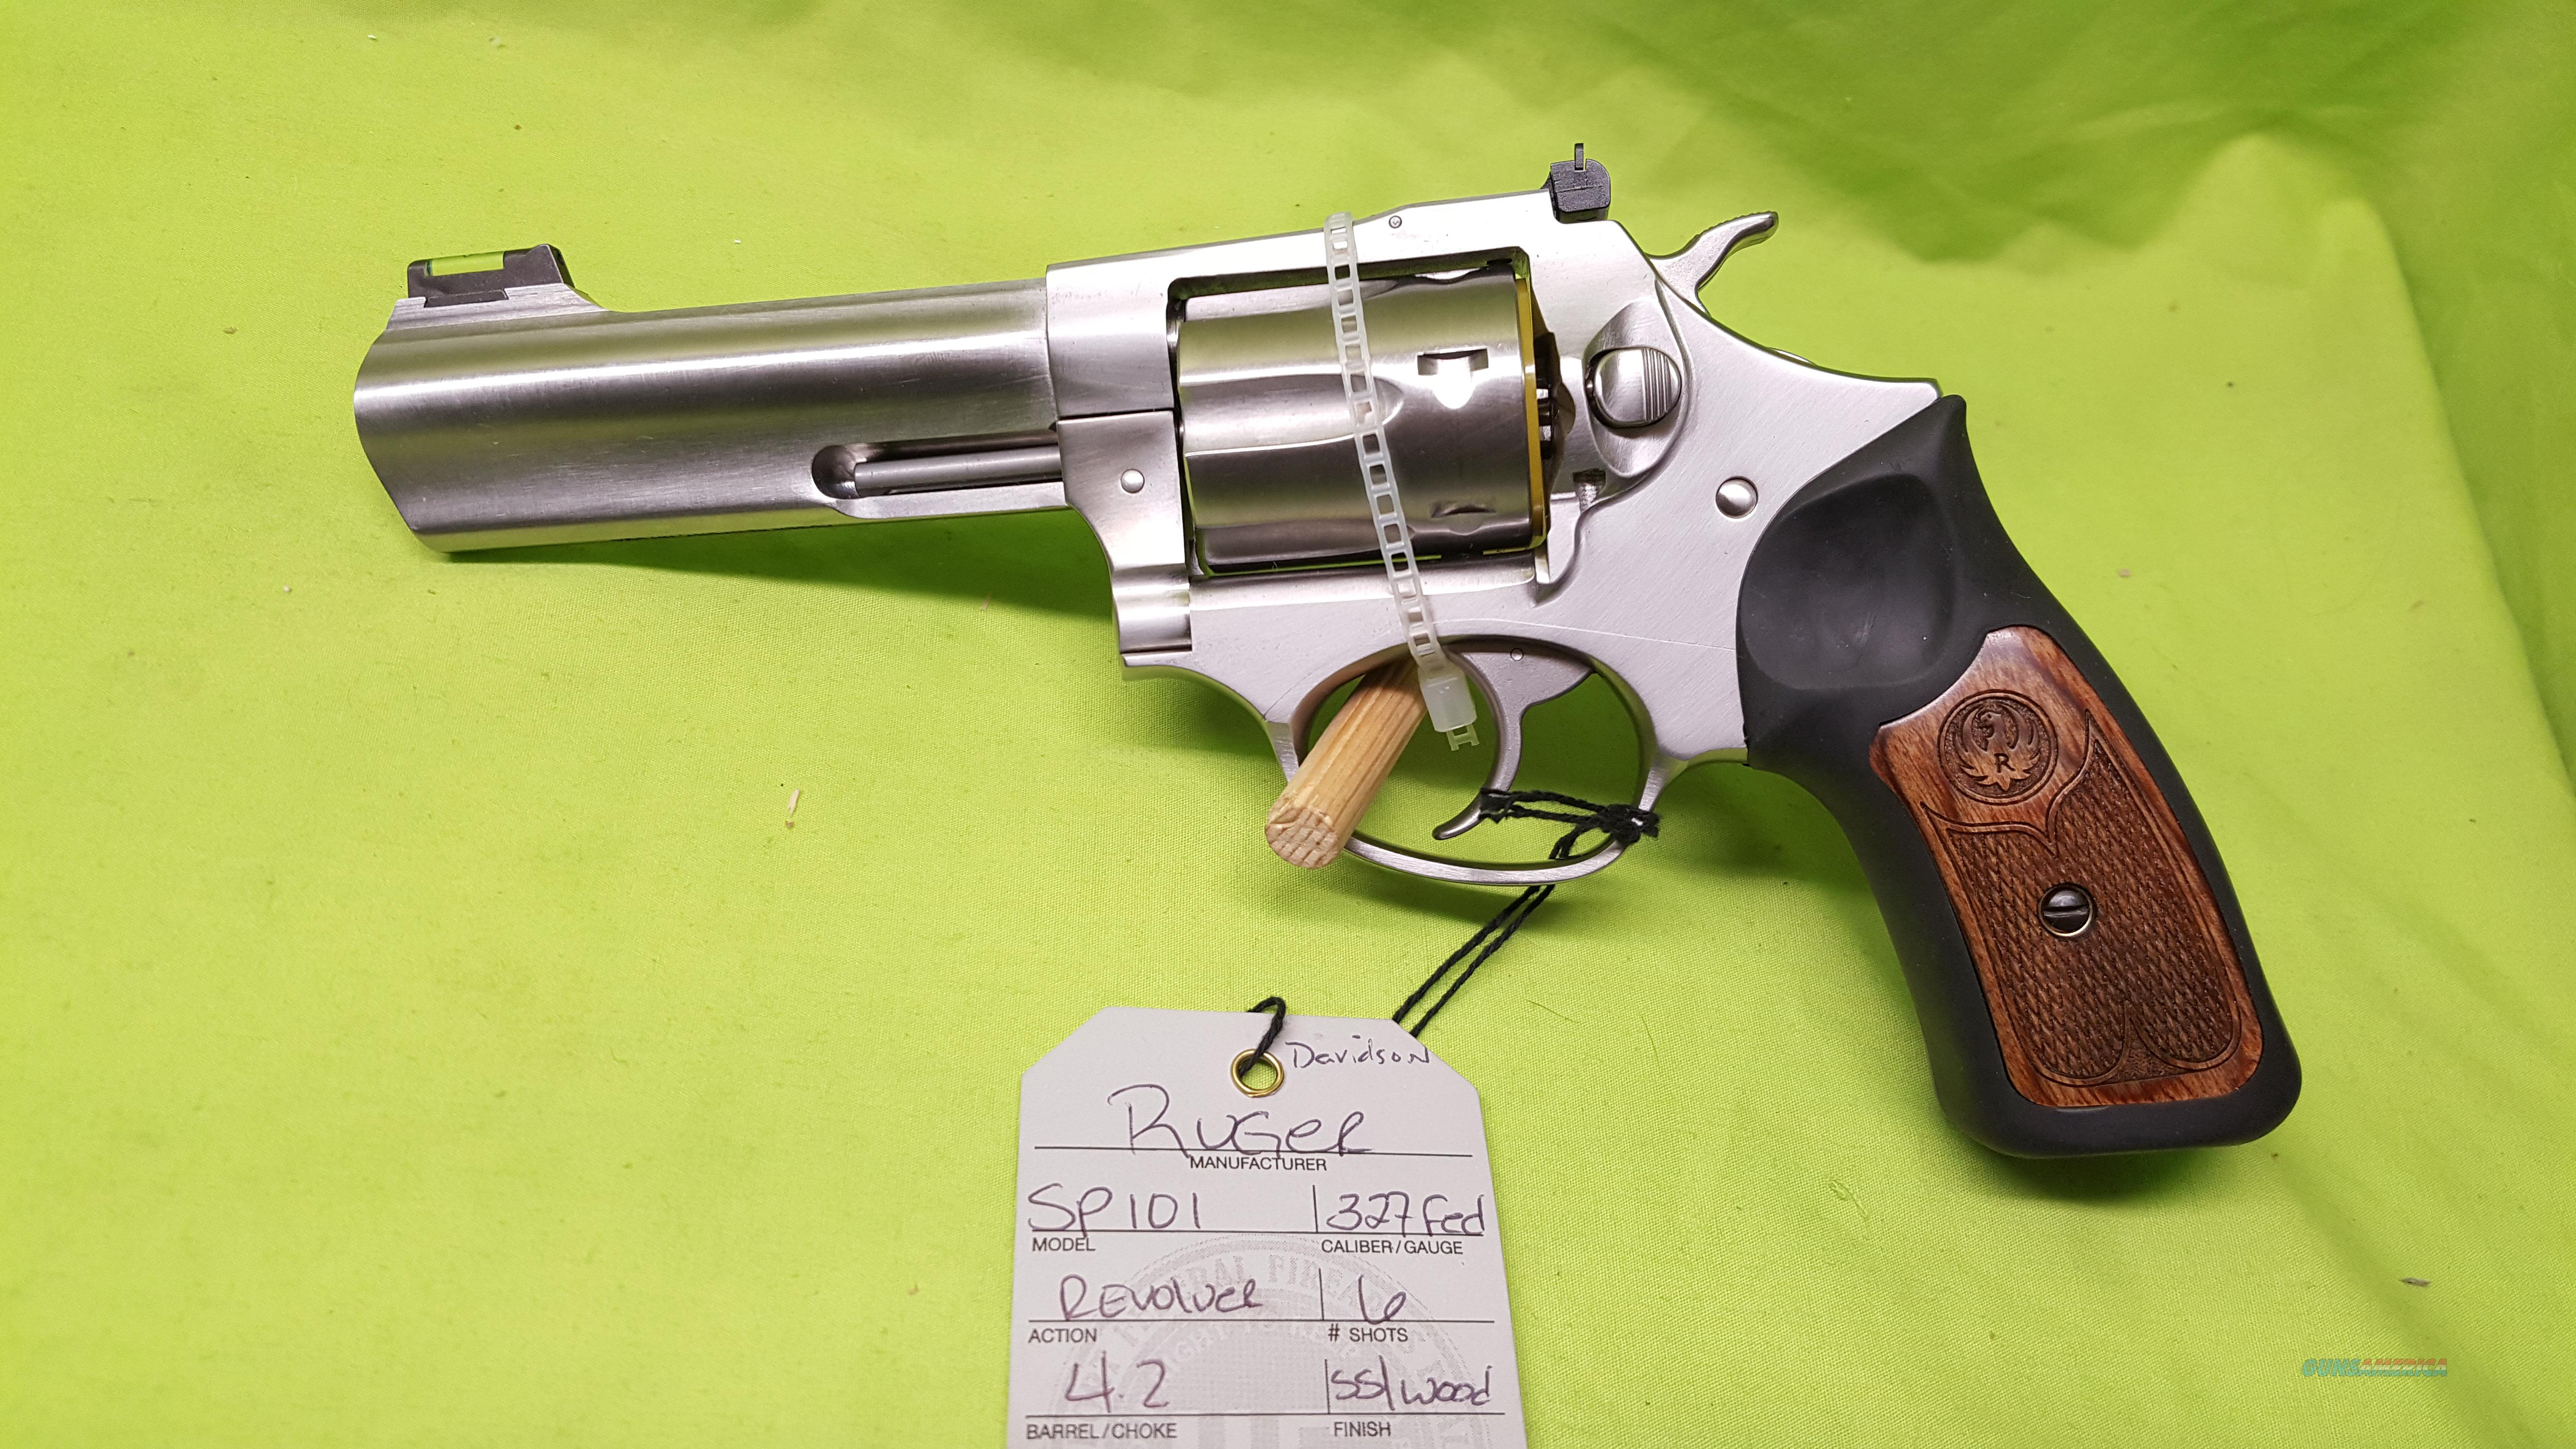 RUGER SP101 SP 101 327 FED REVOLVER 4.2 STAINLESS   Guns > Pistols > Ruger Double Action Revolver > SP101 Type